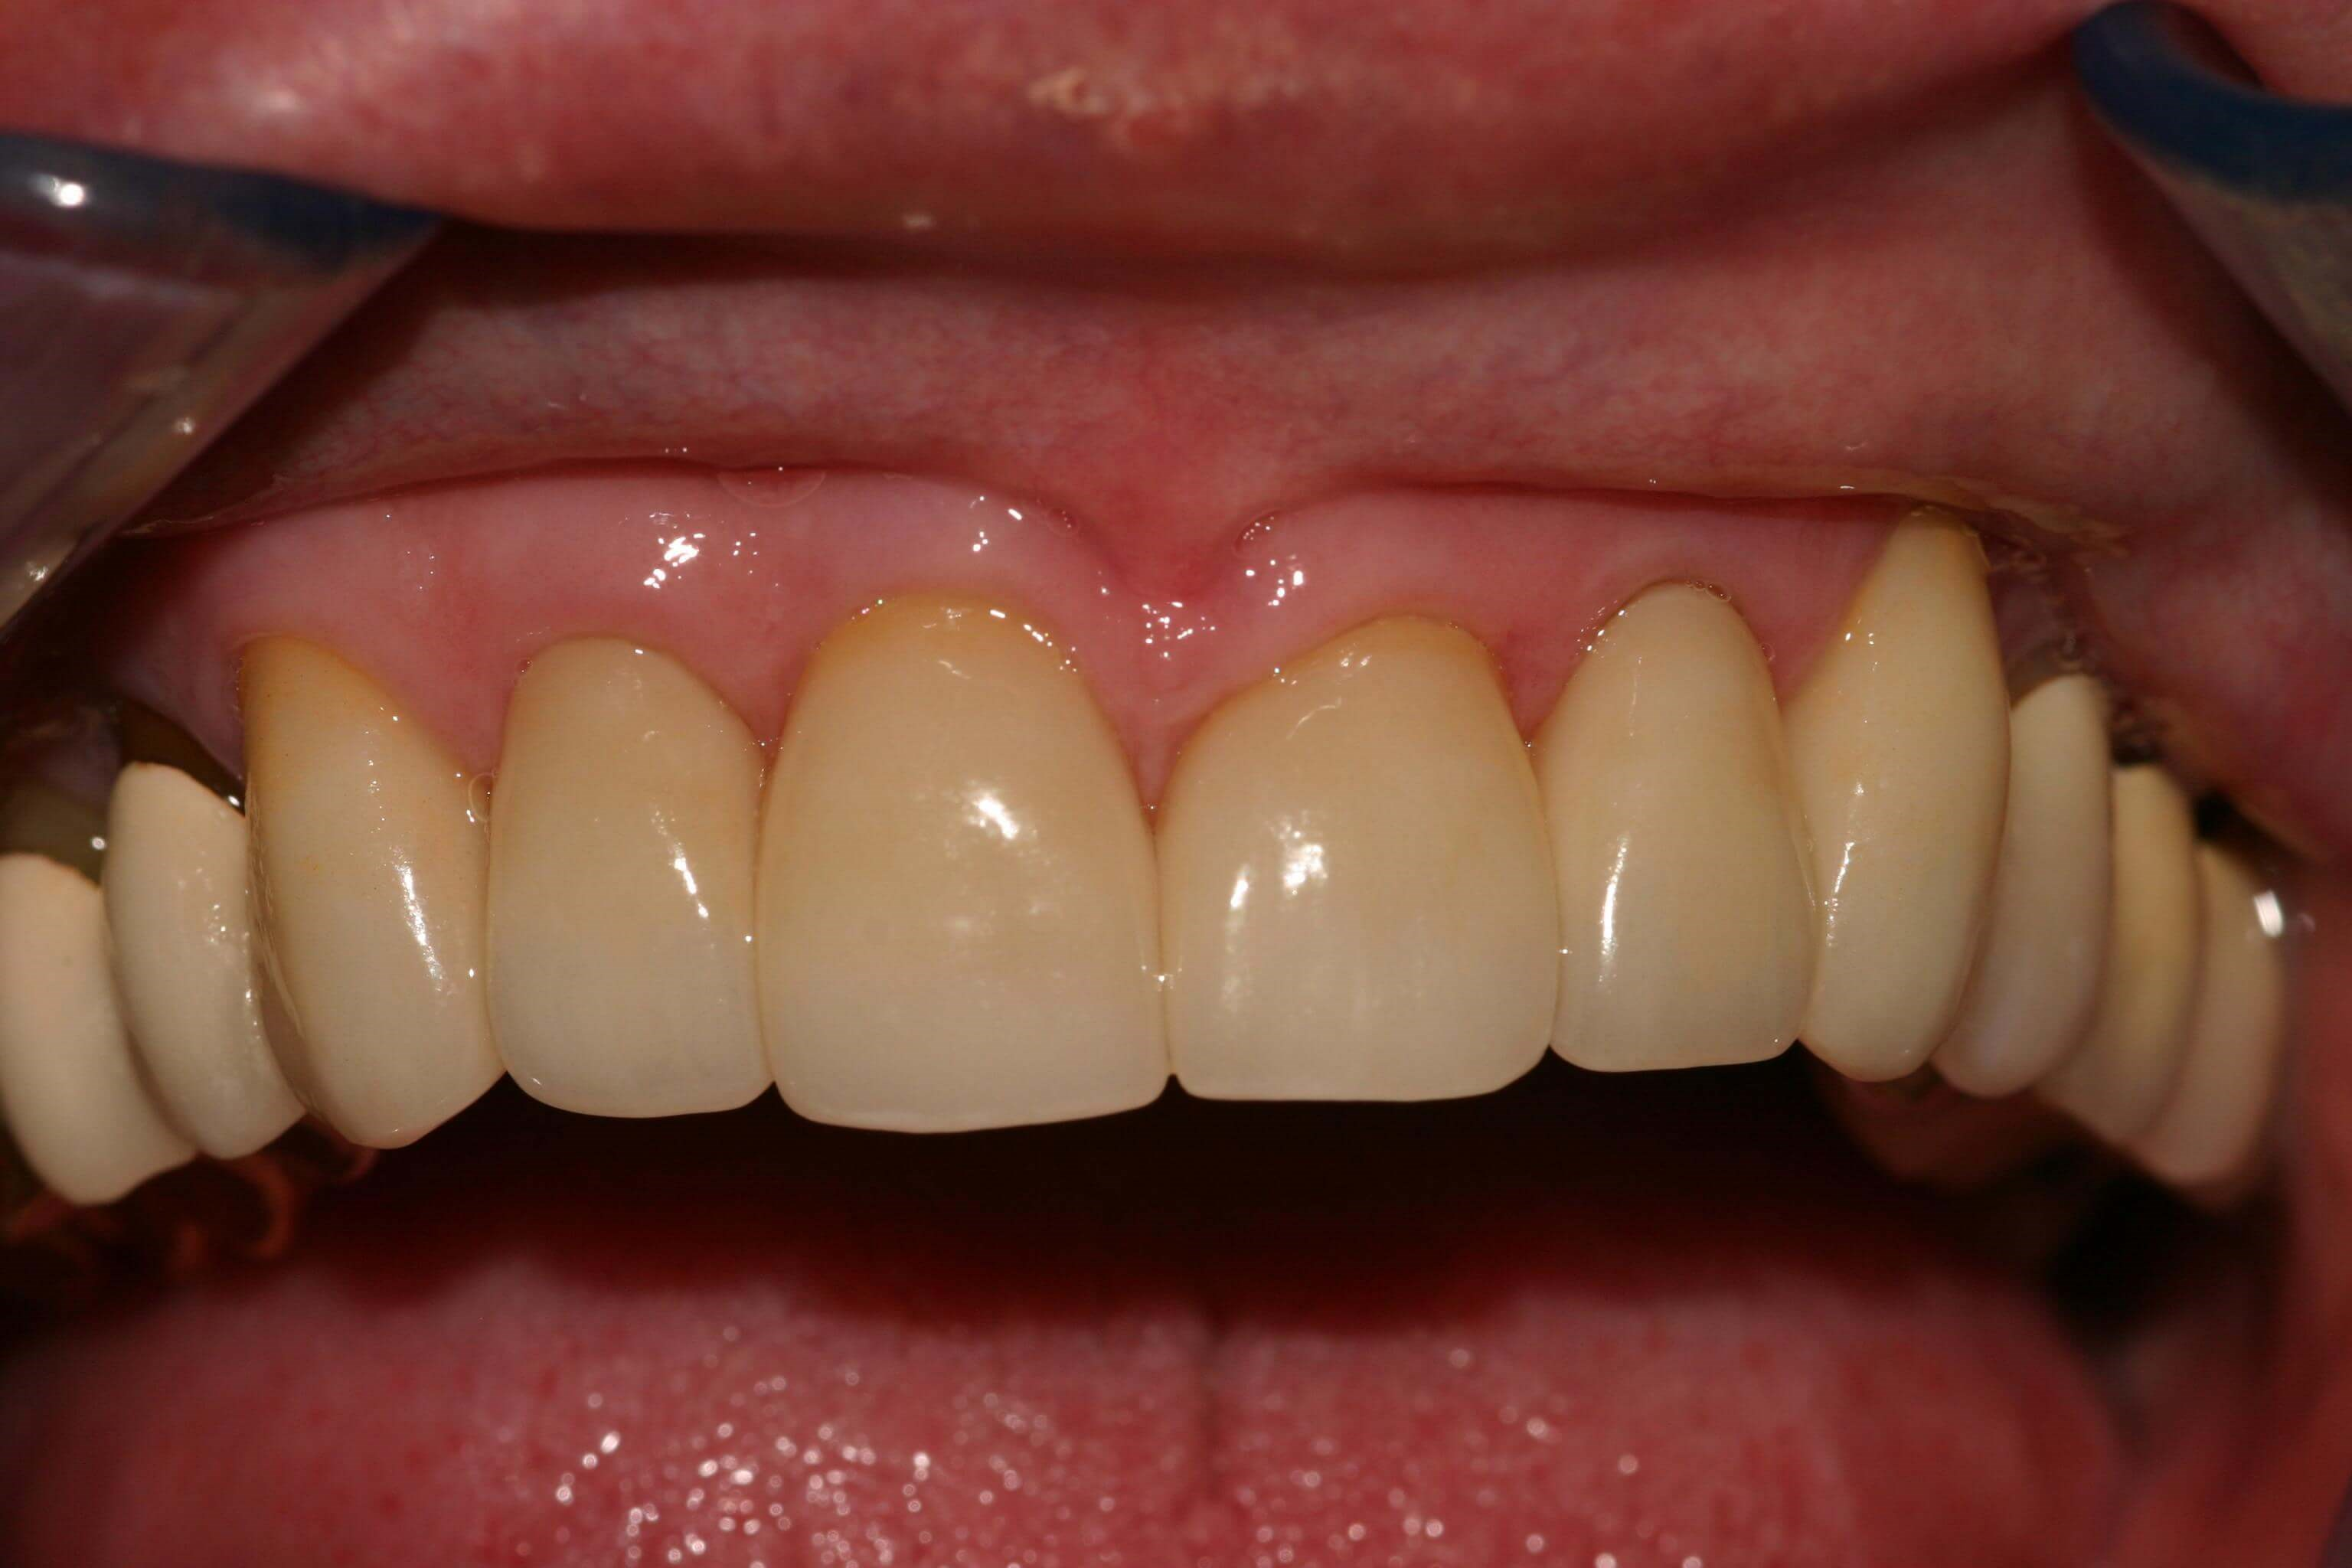 Worn Teeth get a New Smile After